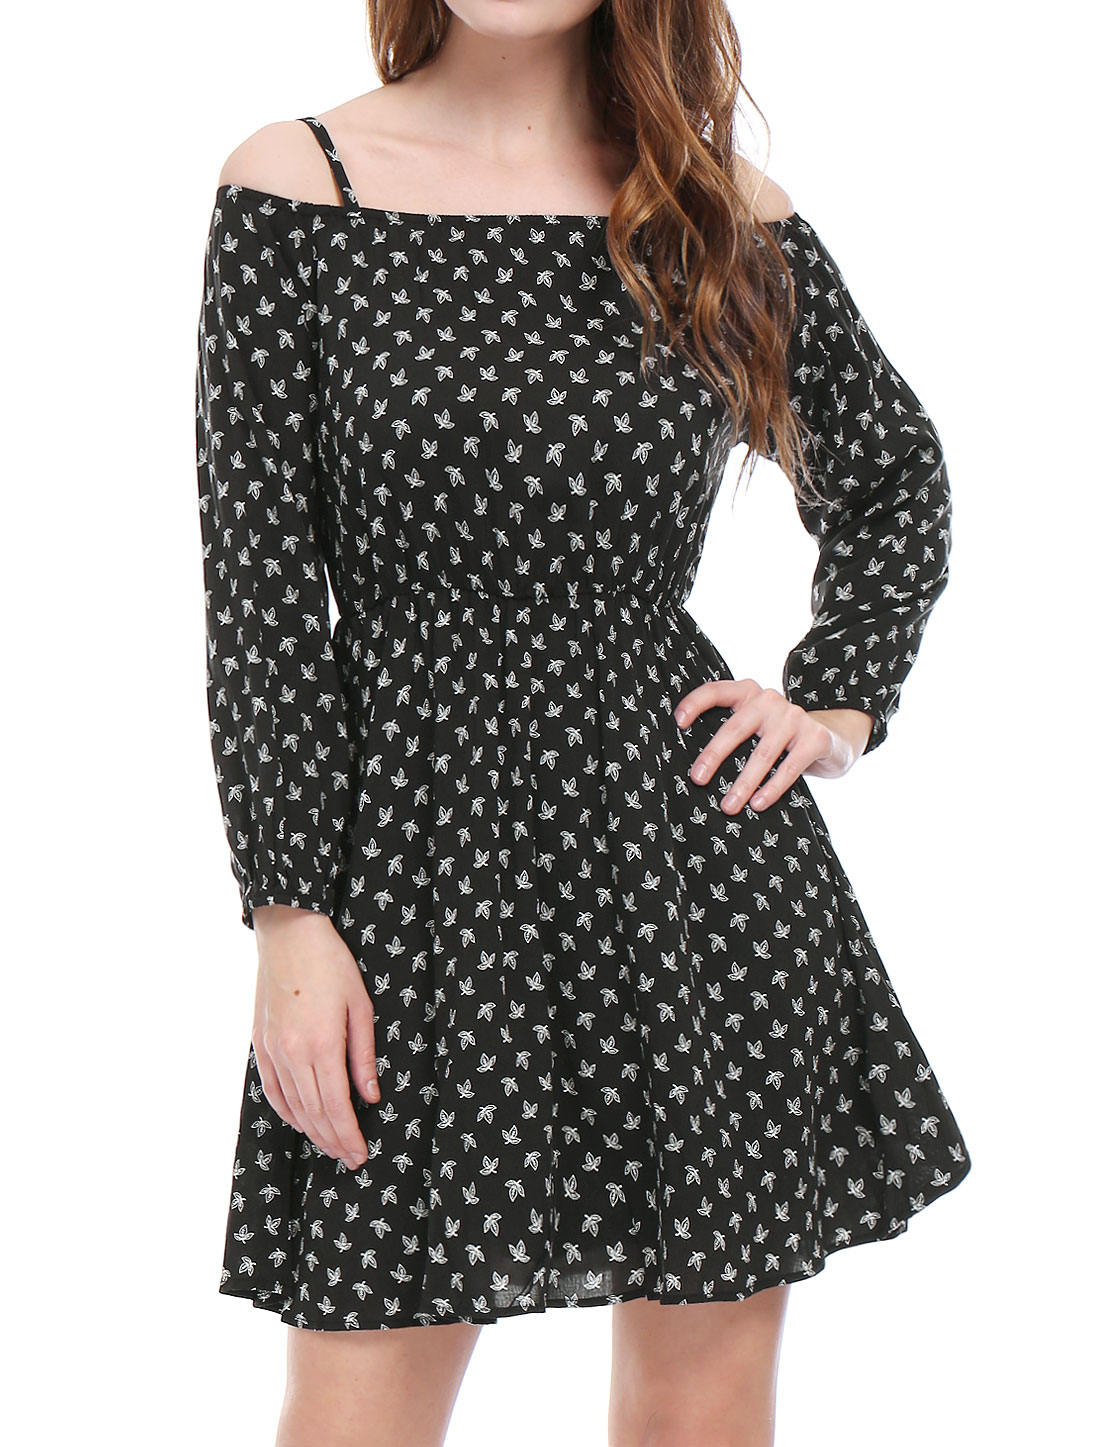 Lady Long Sleeves Leaves Prints Spaghetti Straps Dress Black M